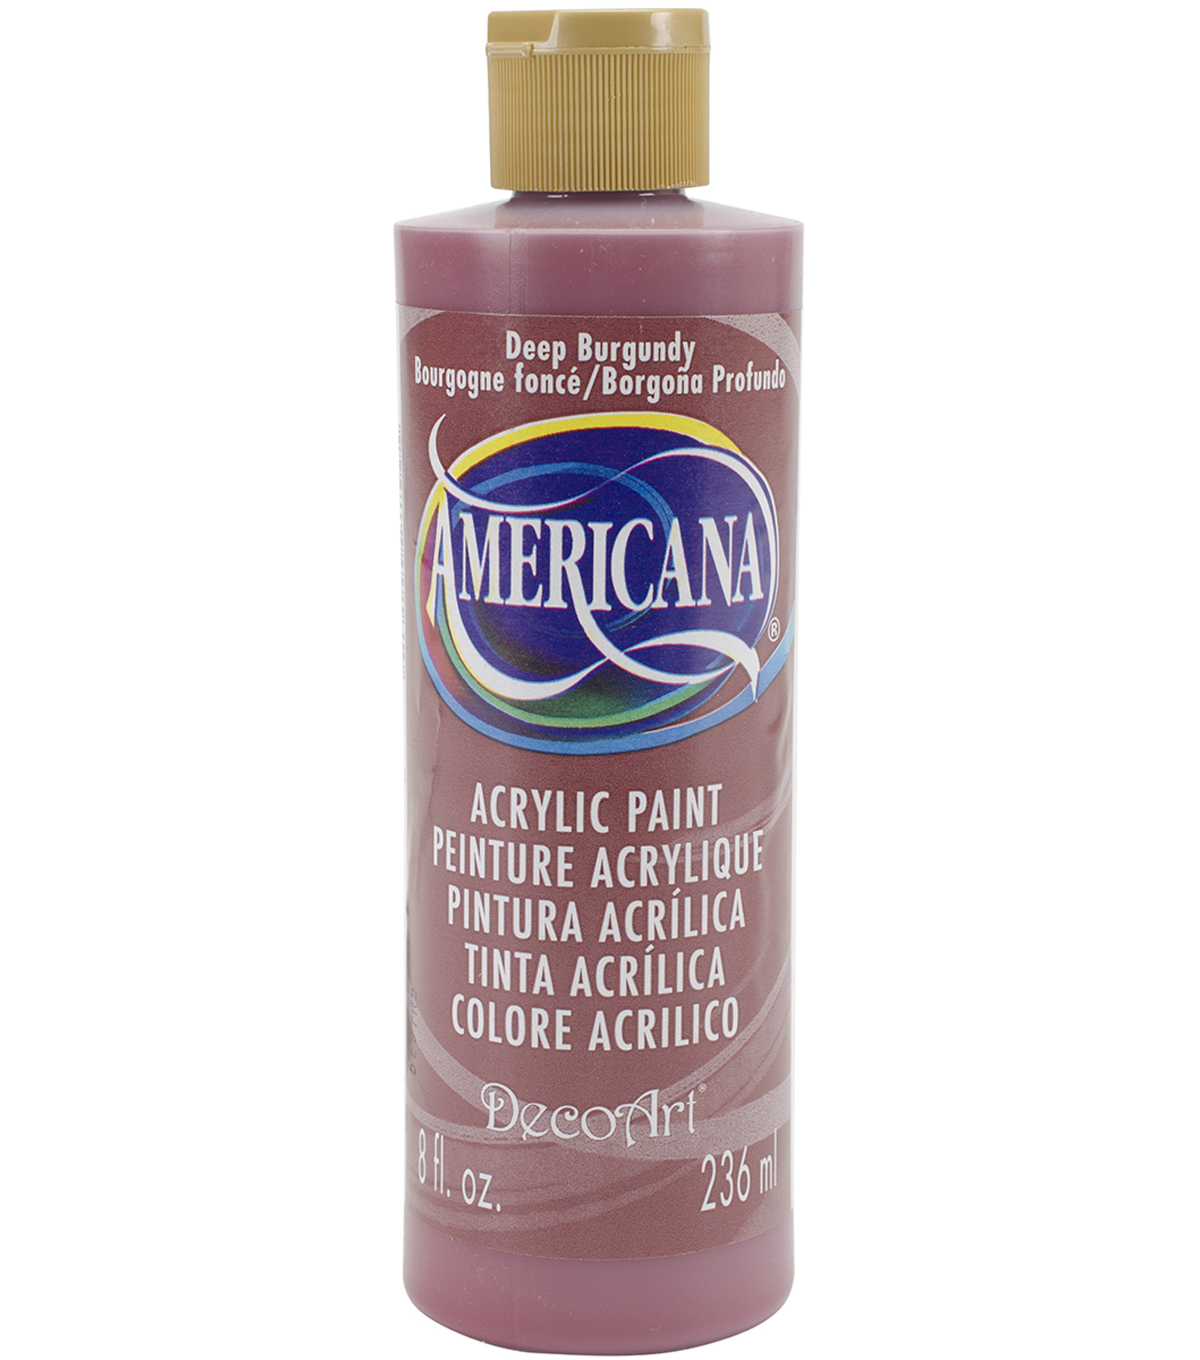 DecoArt Americana 8 fl. oz. Acrylic Paint, Deep Burgundy